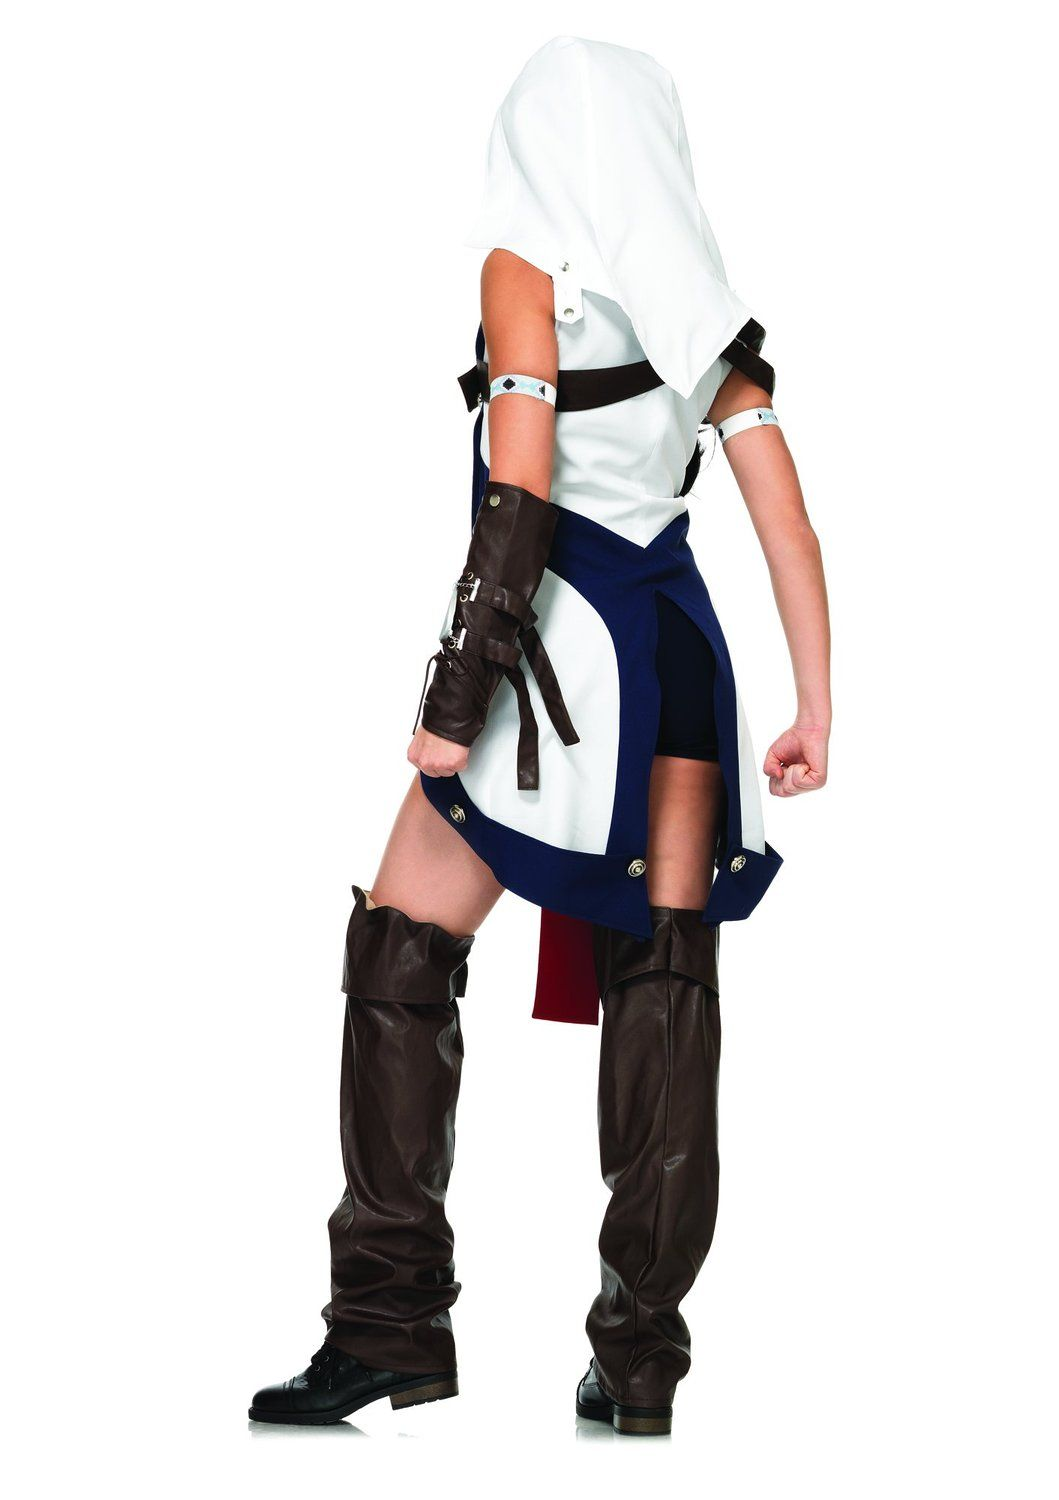 Leg Avenue Women's Assassin's Creed 6 Piece Connor Girl, White/Light Blue, Large - See more at: http://halloween.florenttb.com/costumes-accessories/leg-avenue-women39s-assassin39s-creed-6-piece-connor-girl-whitelight-blue-large-com/#sthash.CZNk6Yls.dpuf